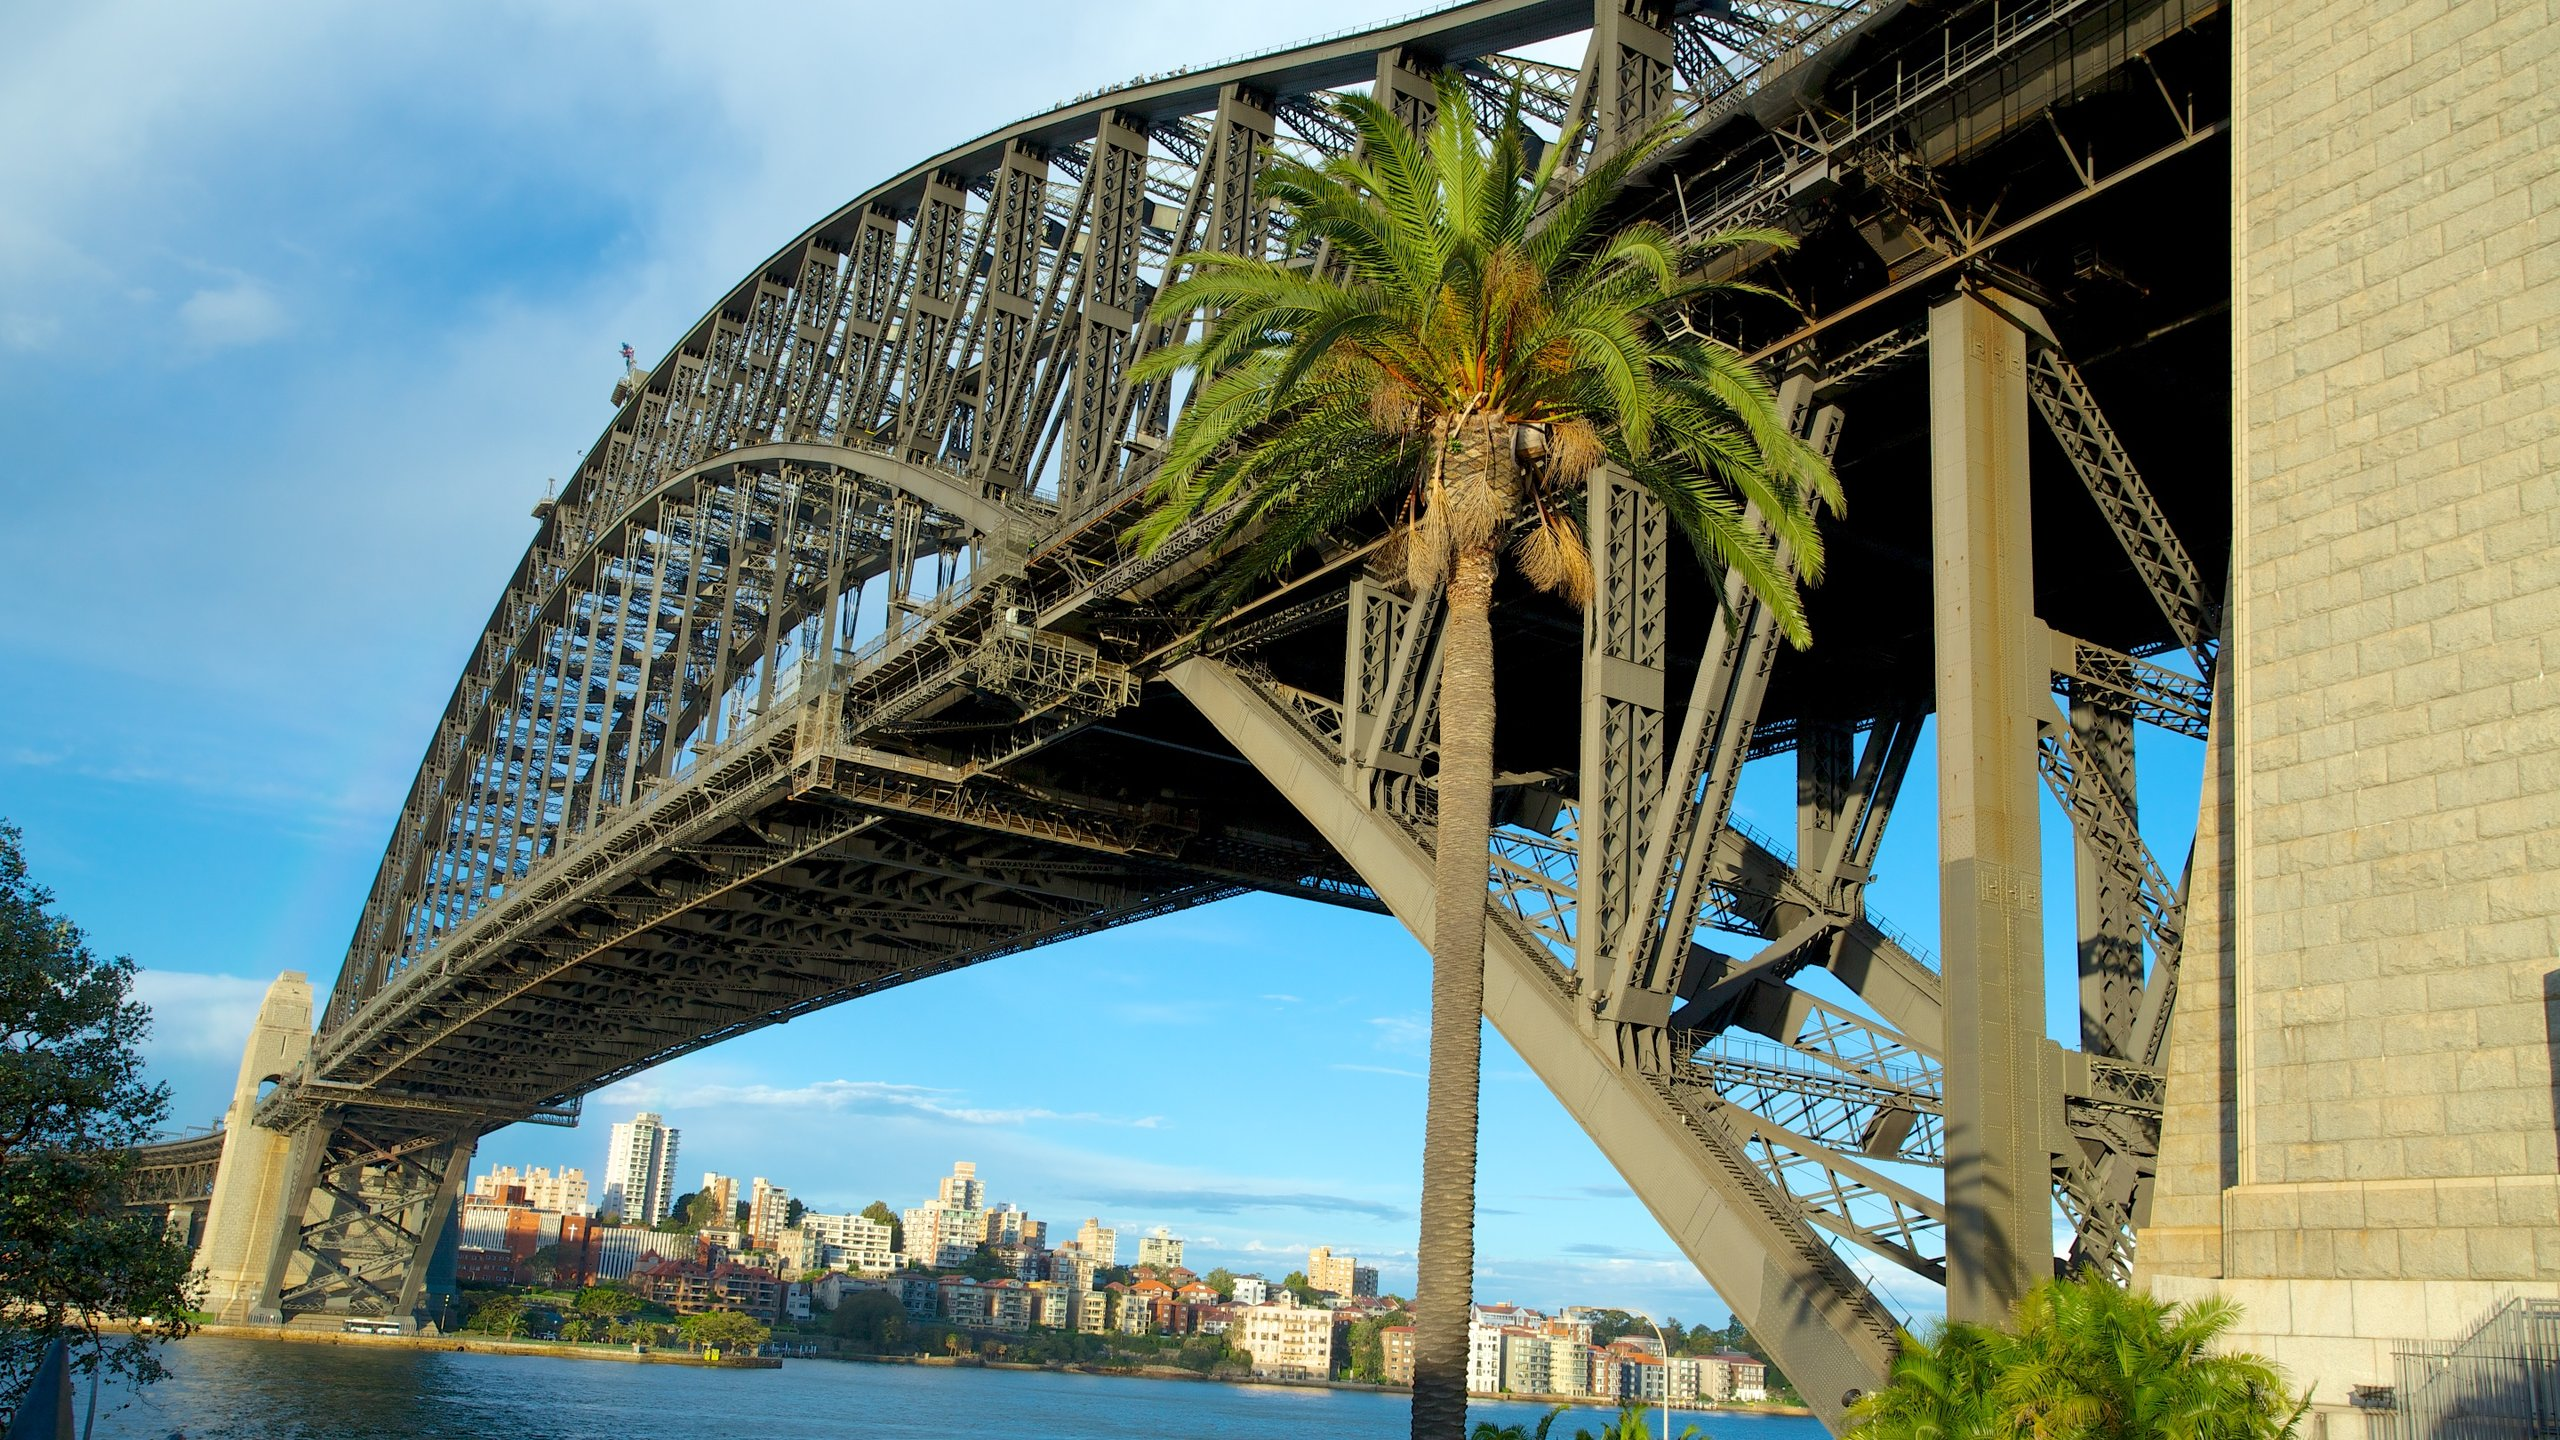 31147-Sydney-Harbour-Bridge.jpg (2560Ã?1440)